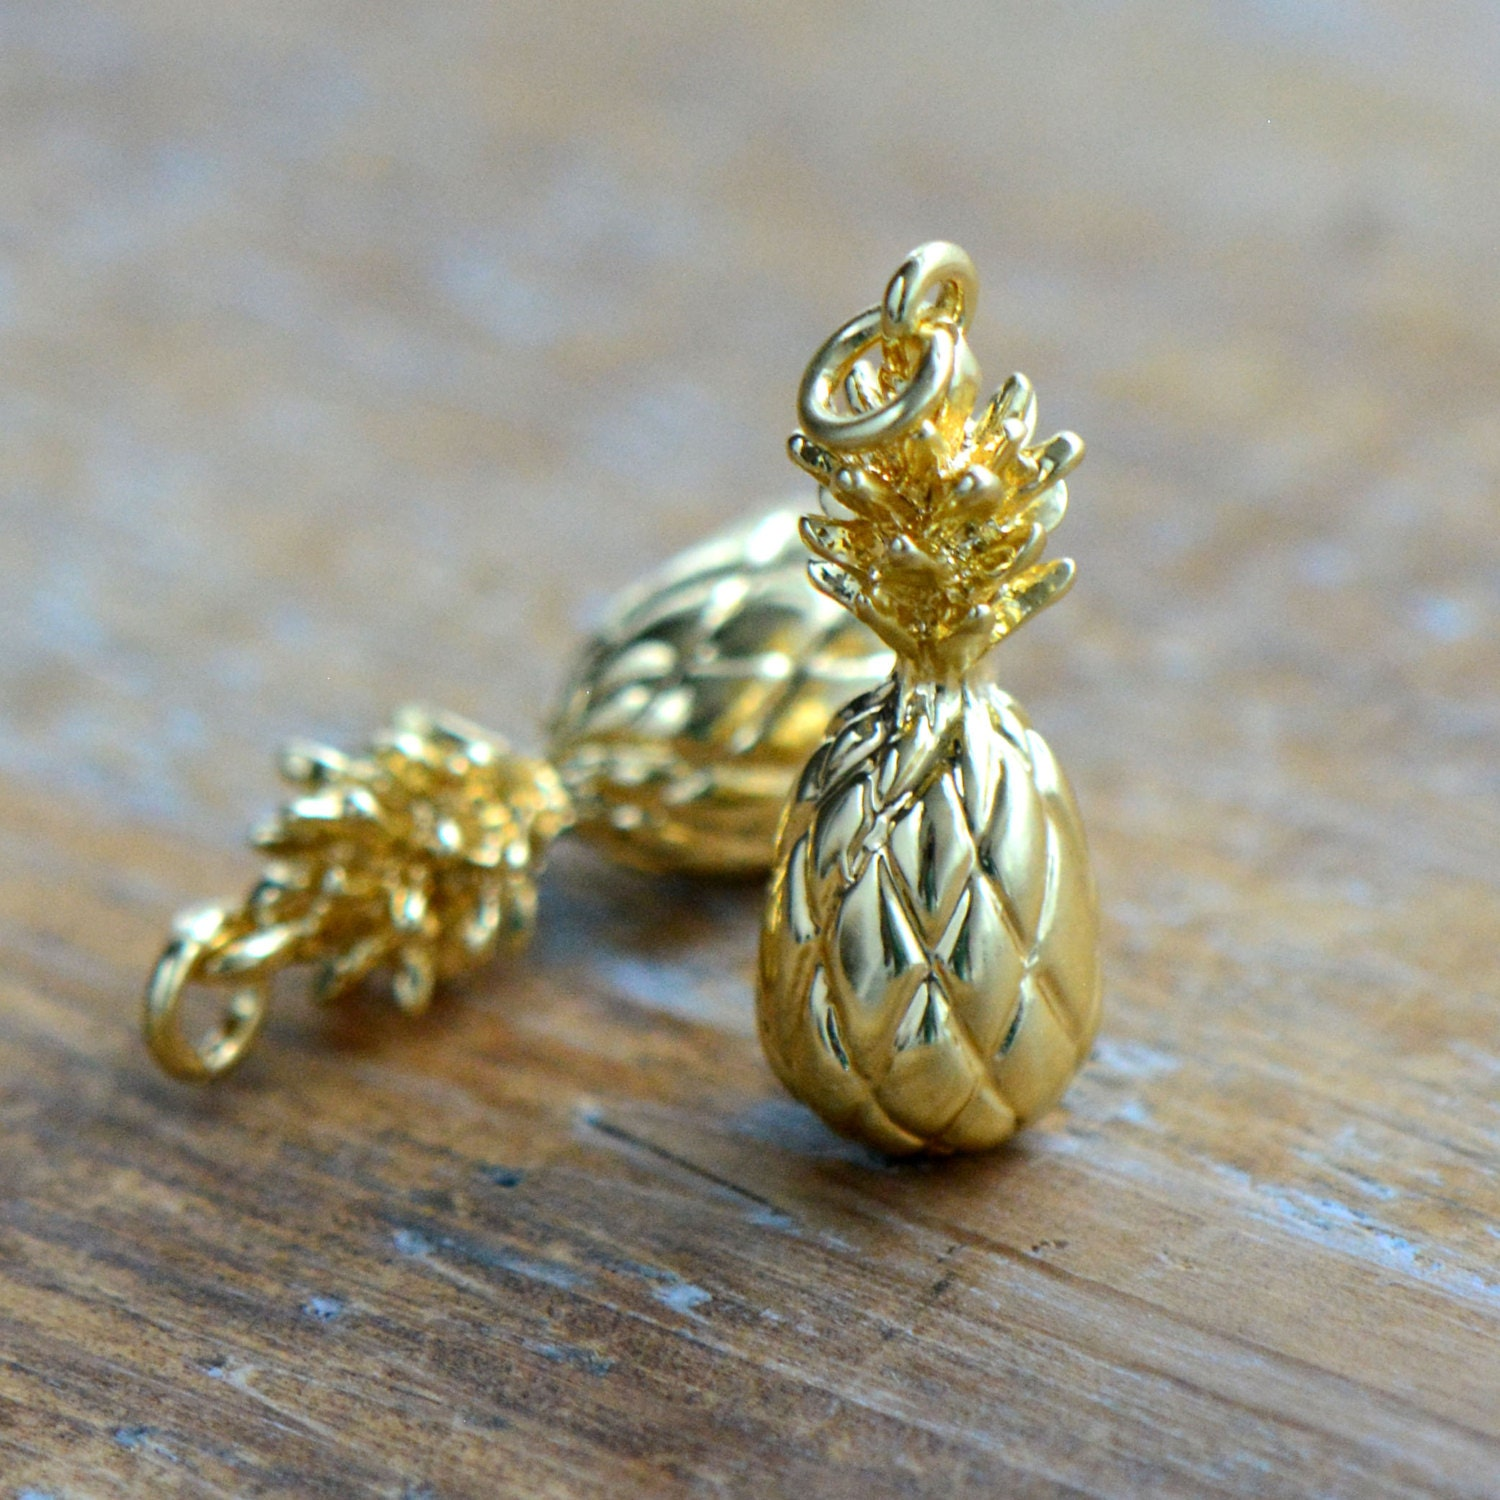 1 Small Pineapple Charm 24k Gold Plated Pineapple Fruit